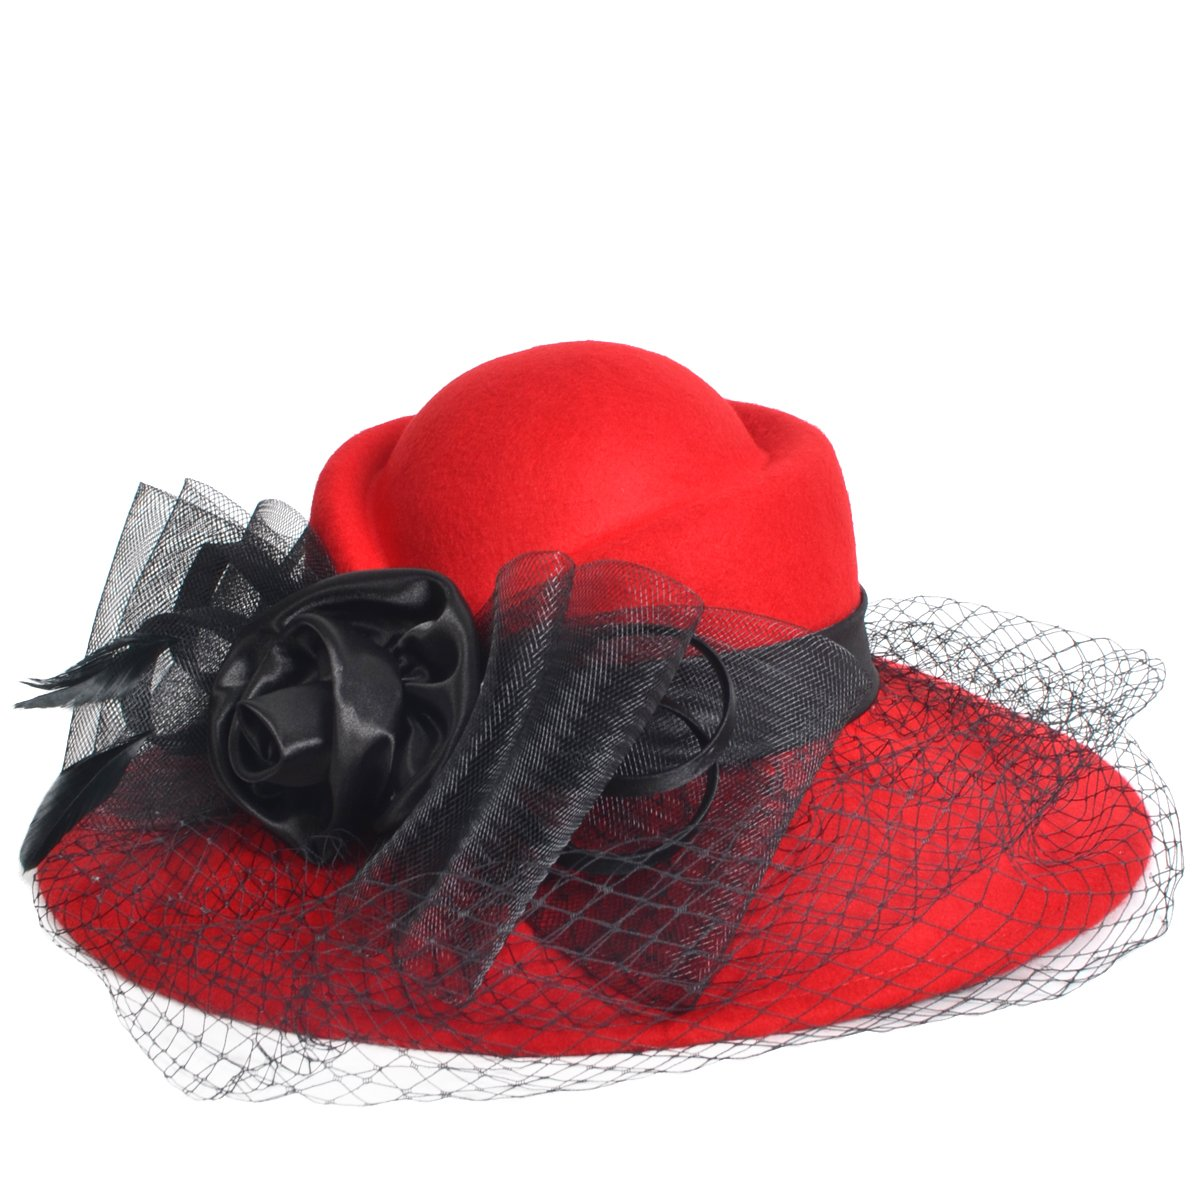 VECRY Women's Fascinator Wool Felt Hat Cocktail Party Wedding Fedora Hats (B-Red) by VECRY (Image #3)